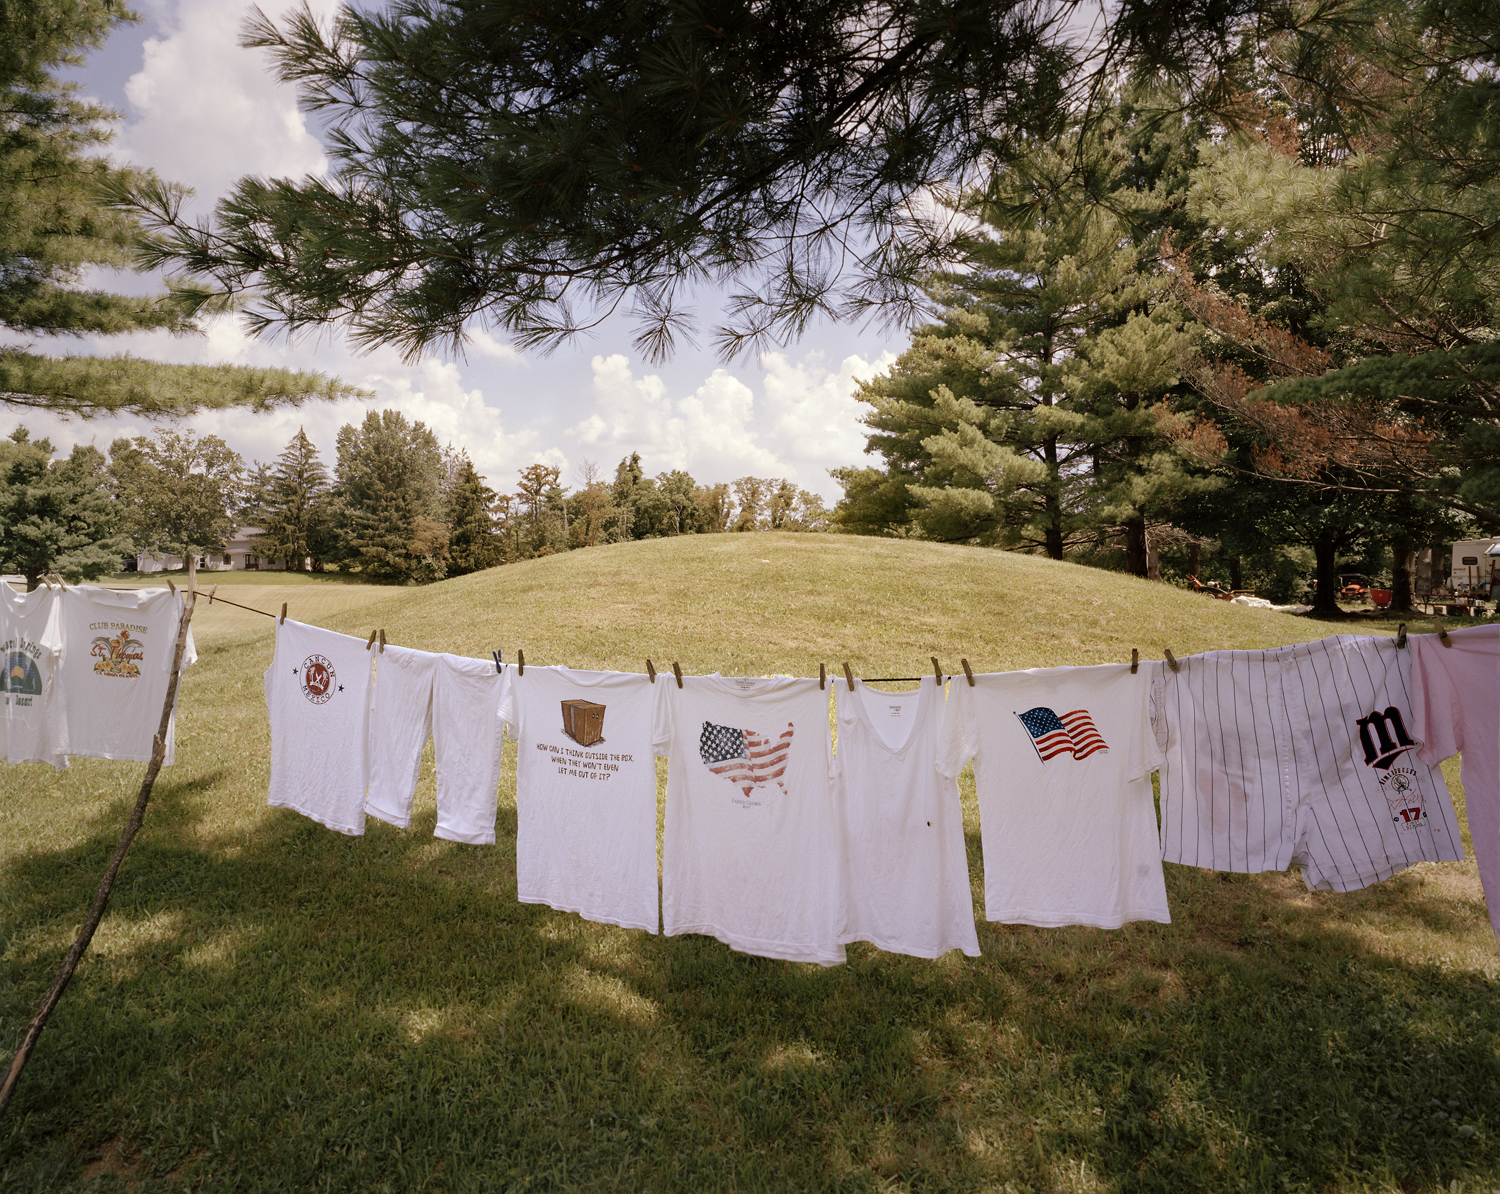 Laundry-Indian-Mound-Campground-New-Marshfield-OH.jpg